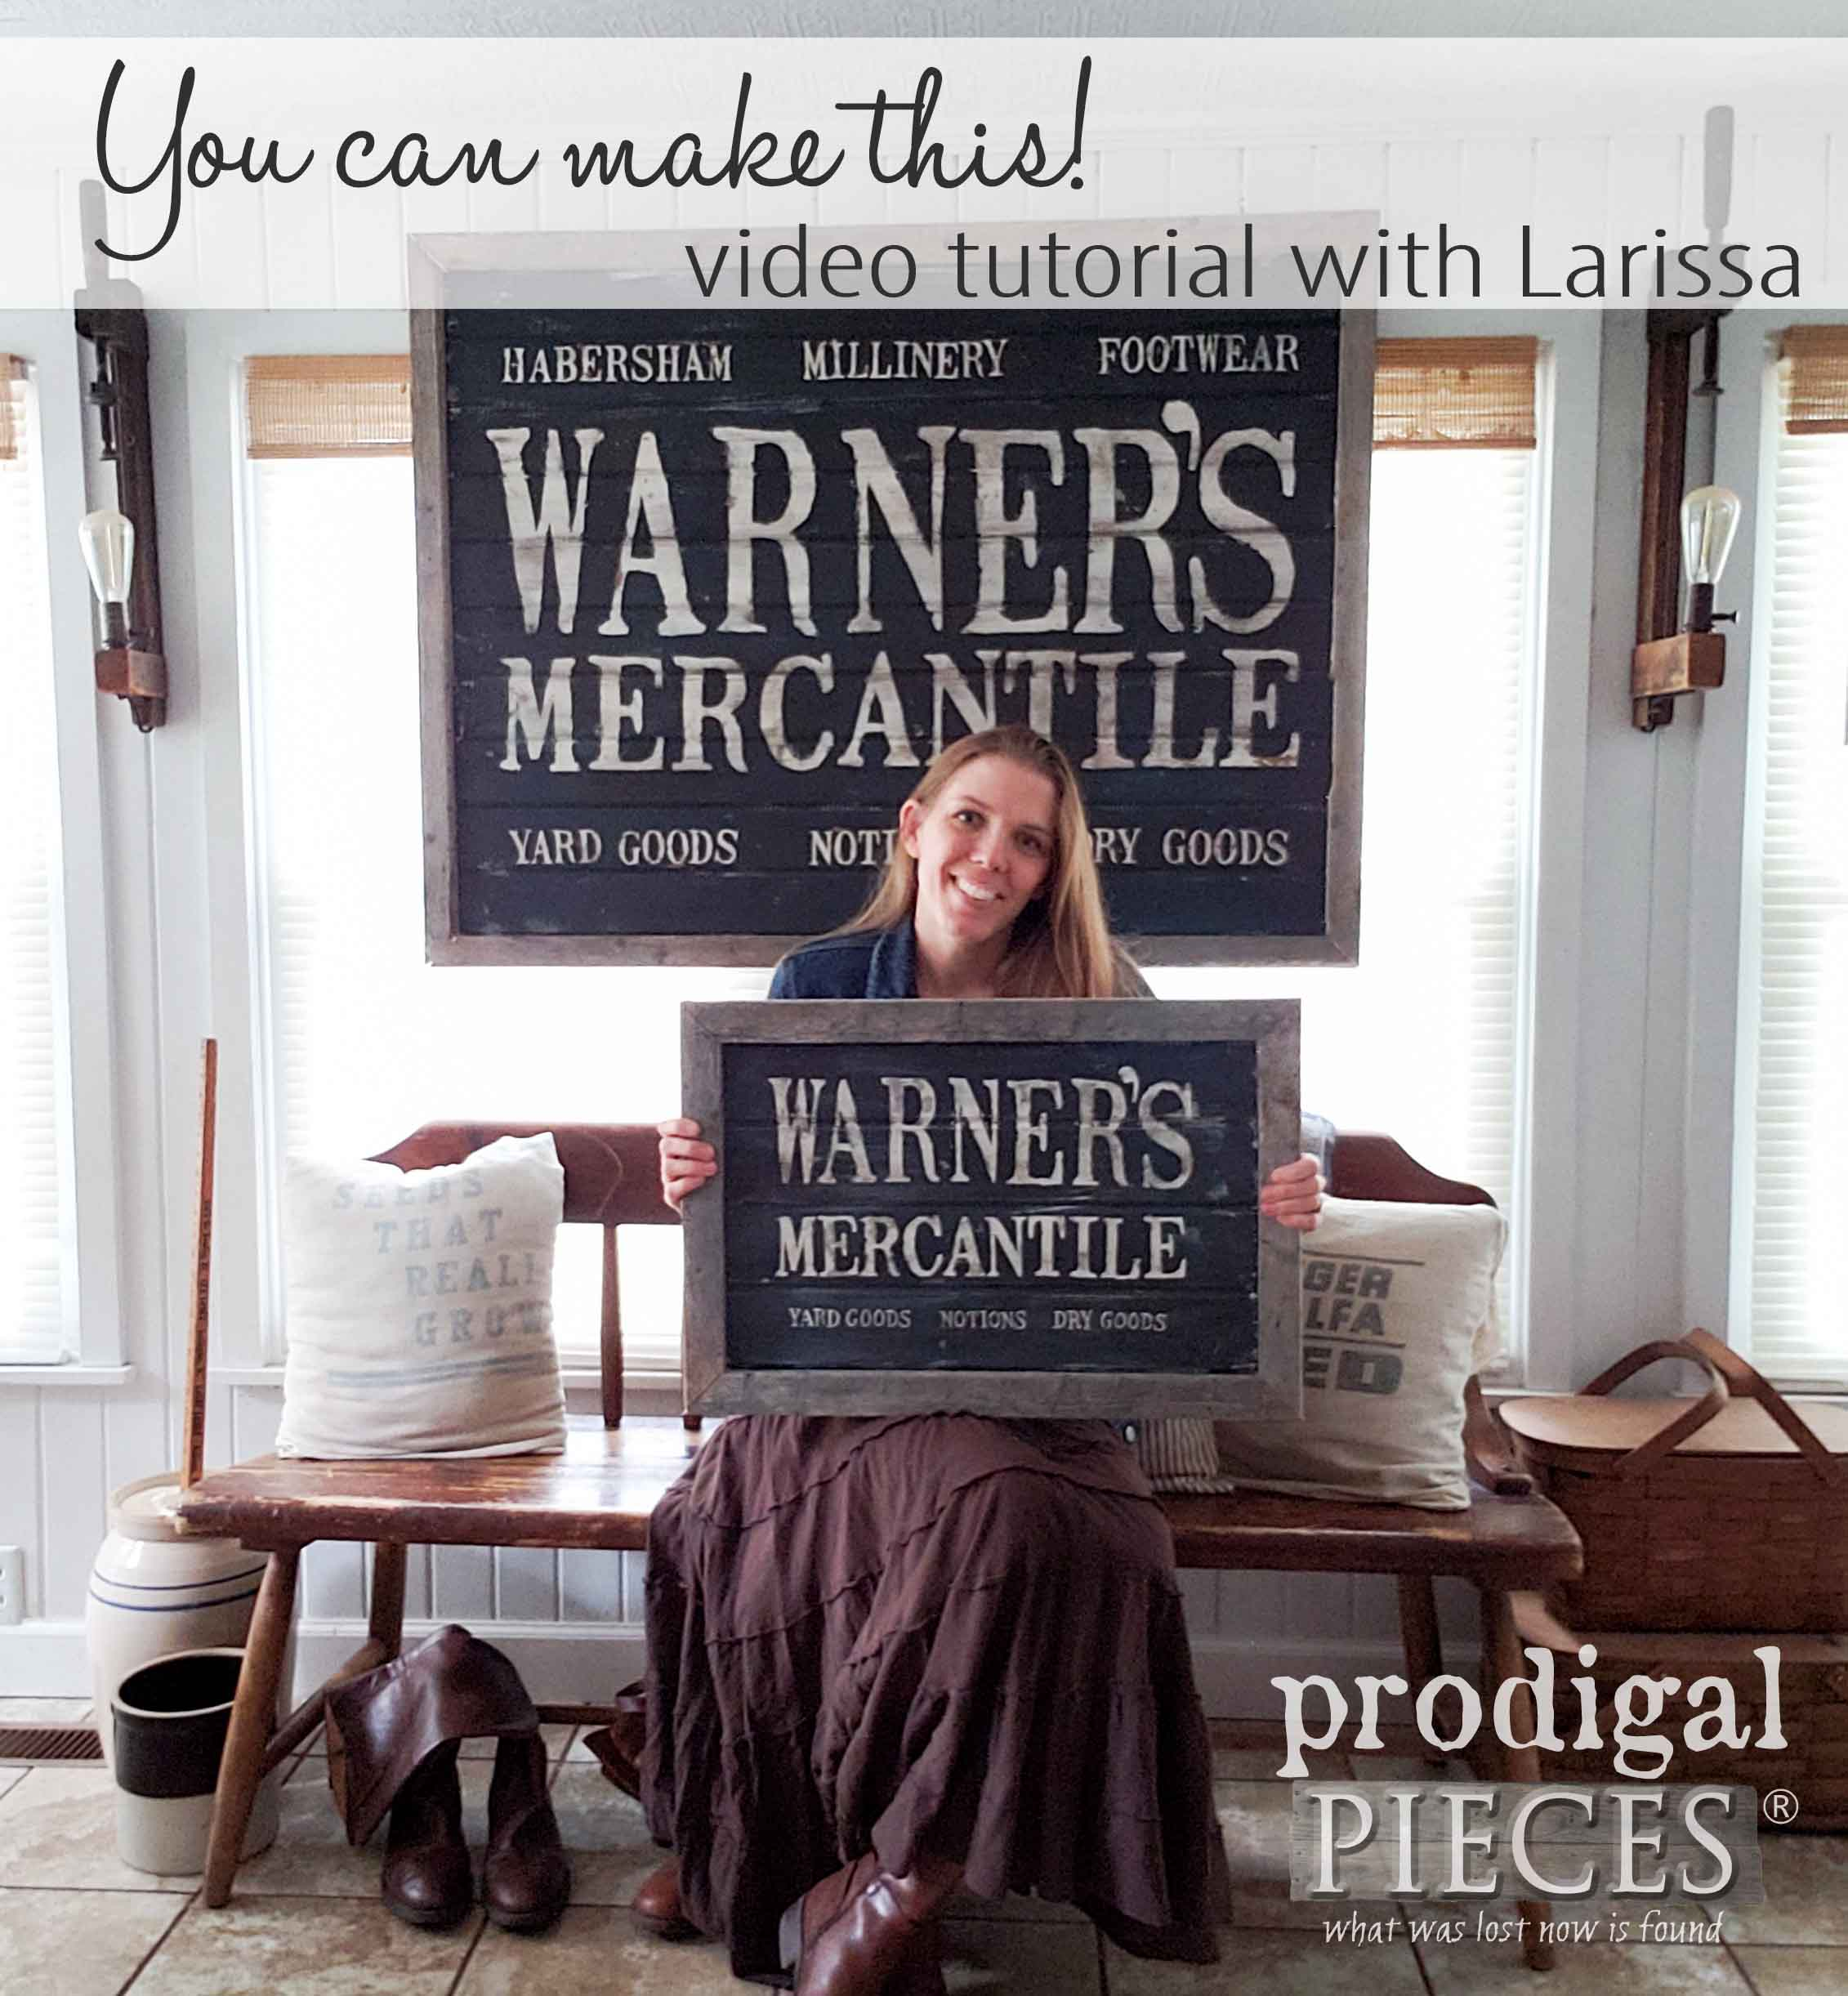 You can create this DIY Antique Store sign with the help of Larissa of Prodigal Pieces and her step-by-step video tutorial at prodigalpieces.com #prodigalpieces #diy #handmade #home #homedecor #farmhouse